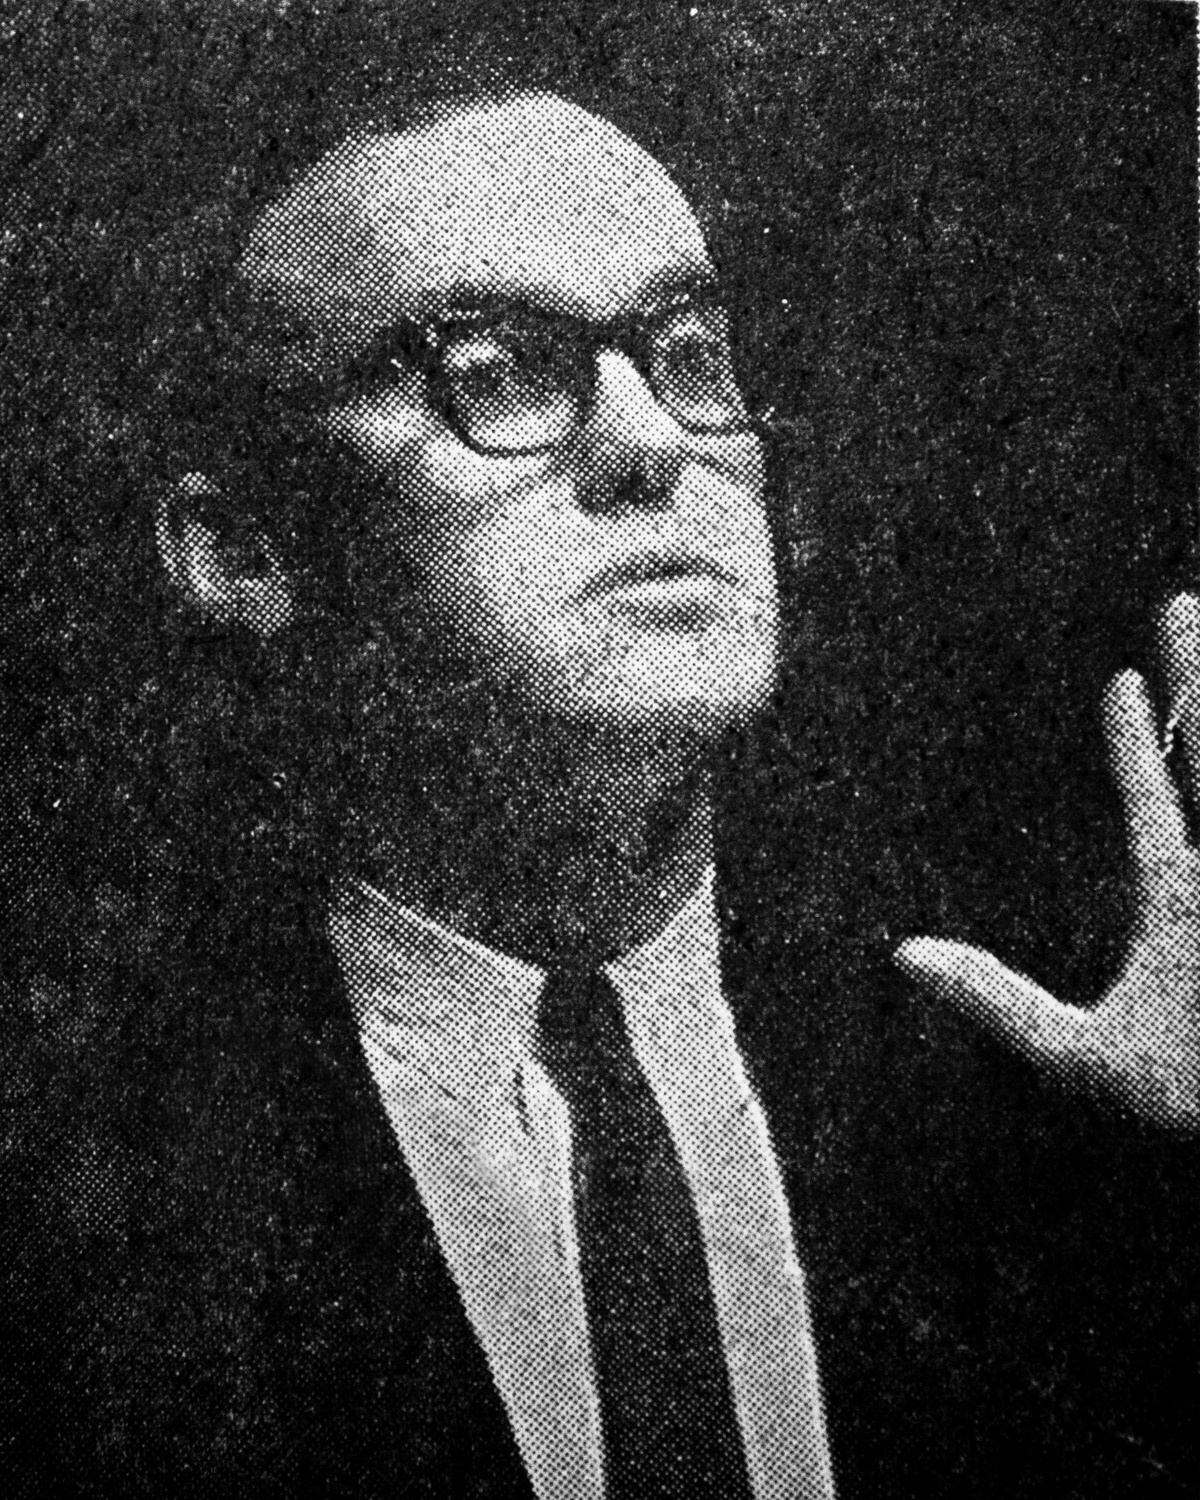 Richard Alpert in the May 28, 1963 issue of The Harvard Crimson following the Harvard